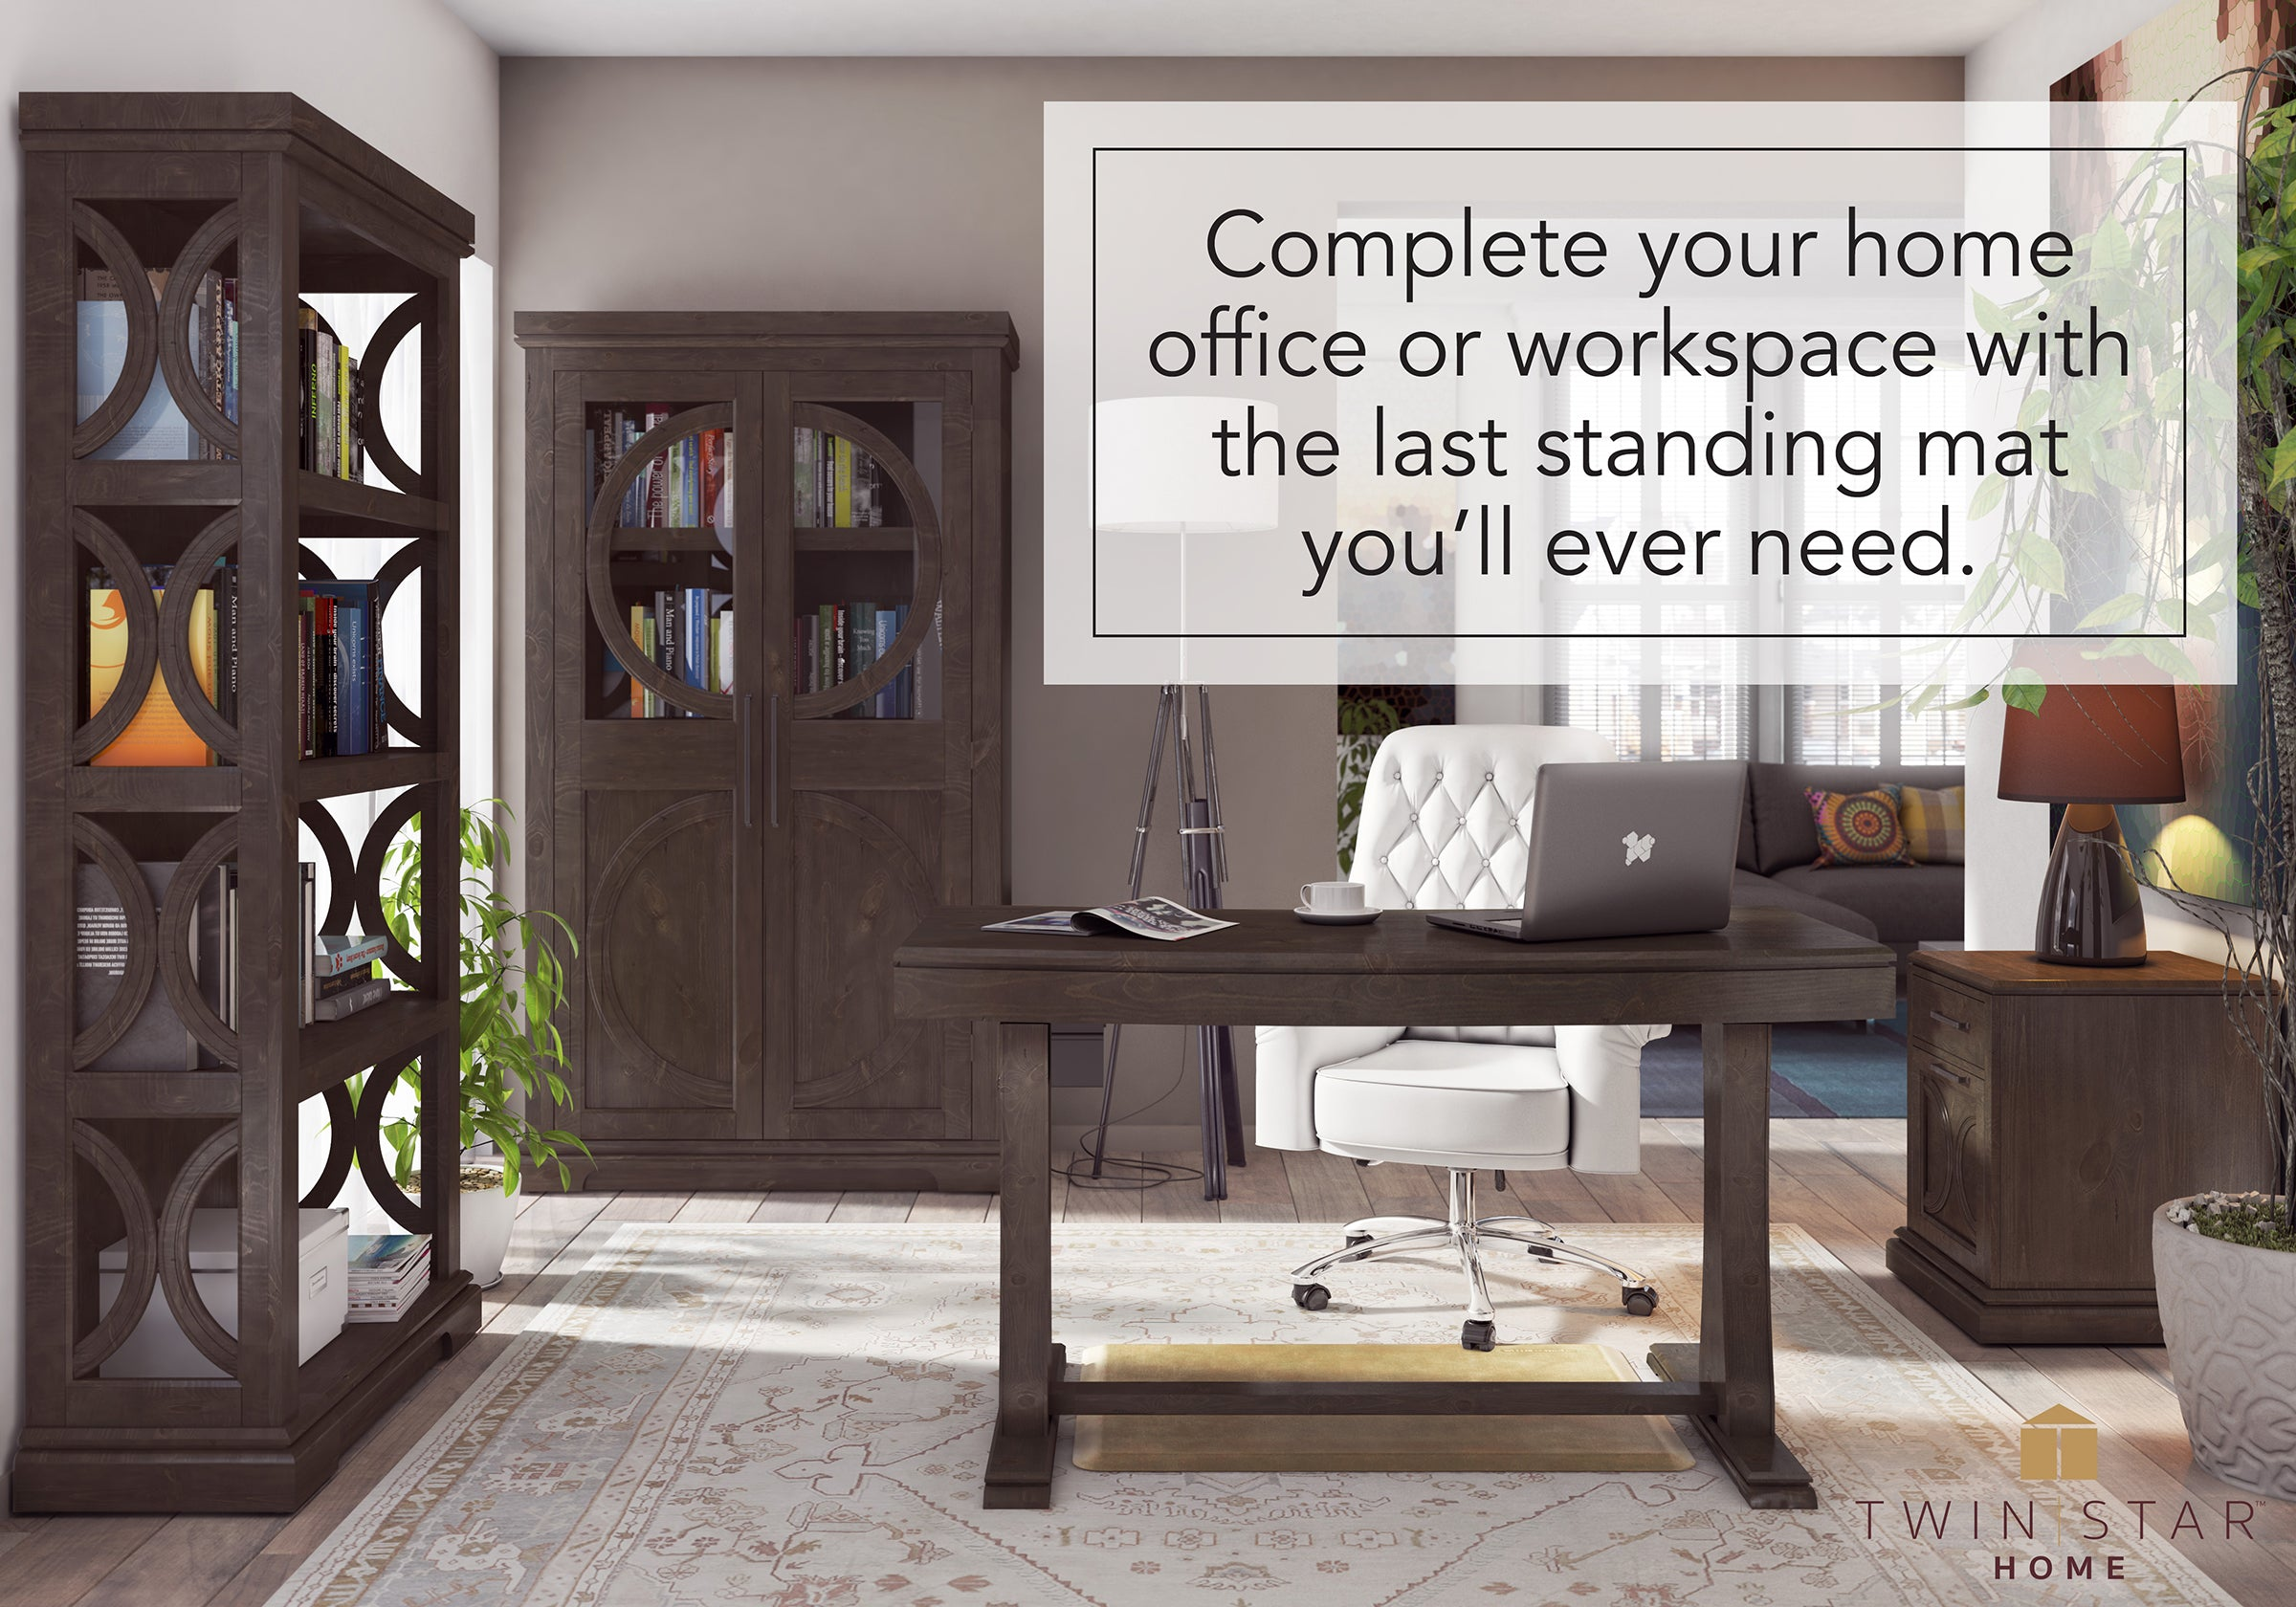 Home office standing desk Tall Standing Complete Your Home Office Or Workspace With The Last Standing Mat Youll Ever Need Wellnessmats Standing Desk Mats Wellnessmats